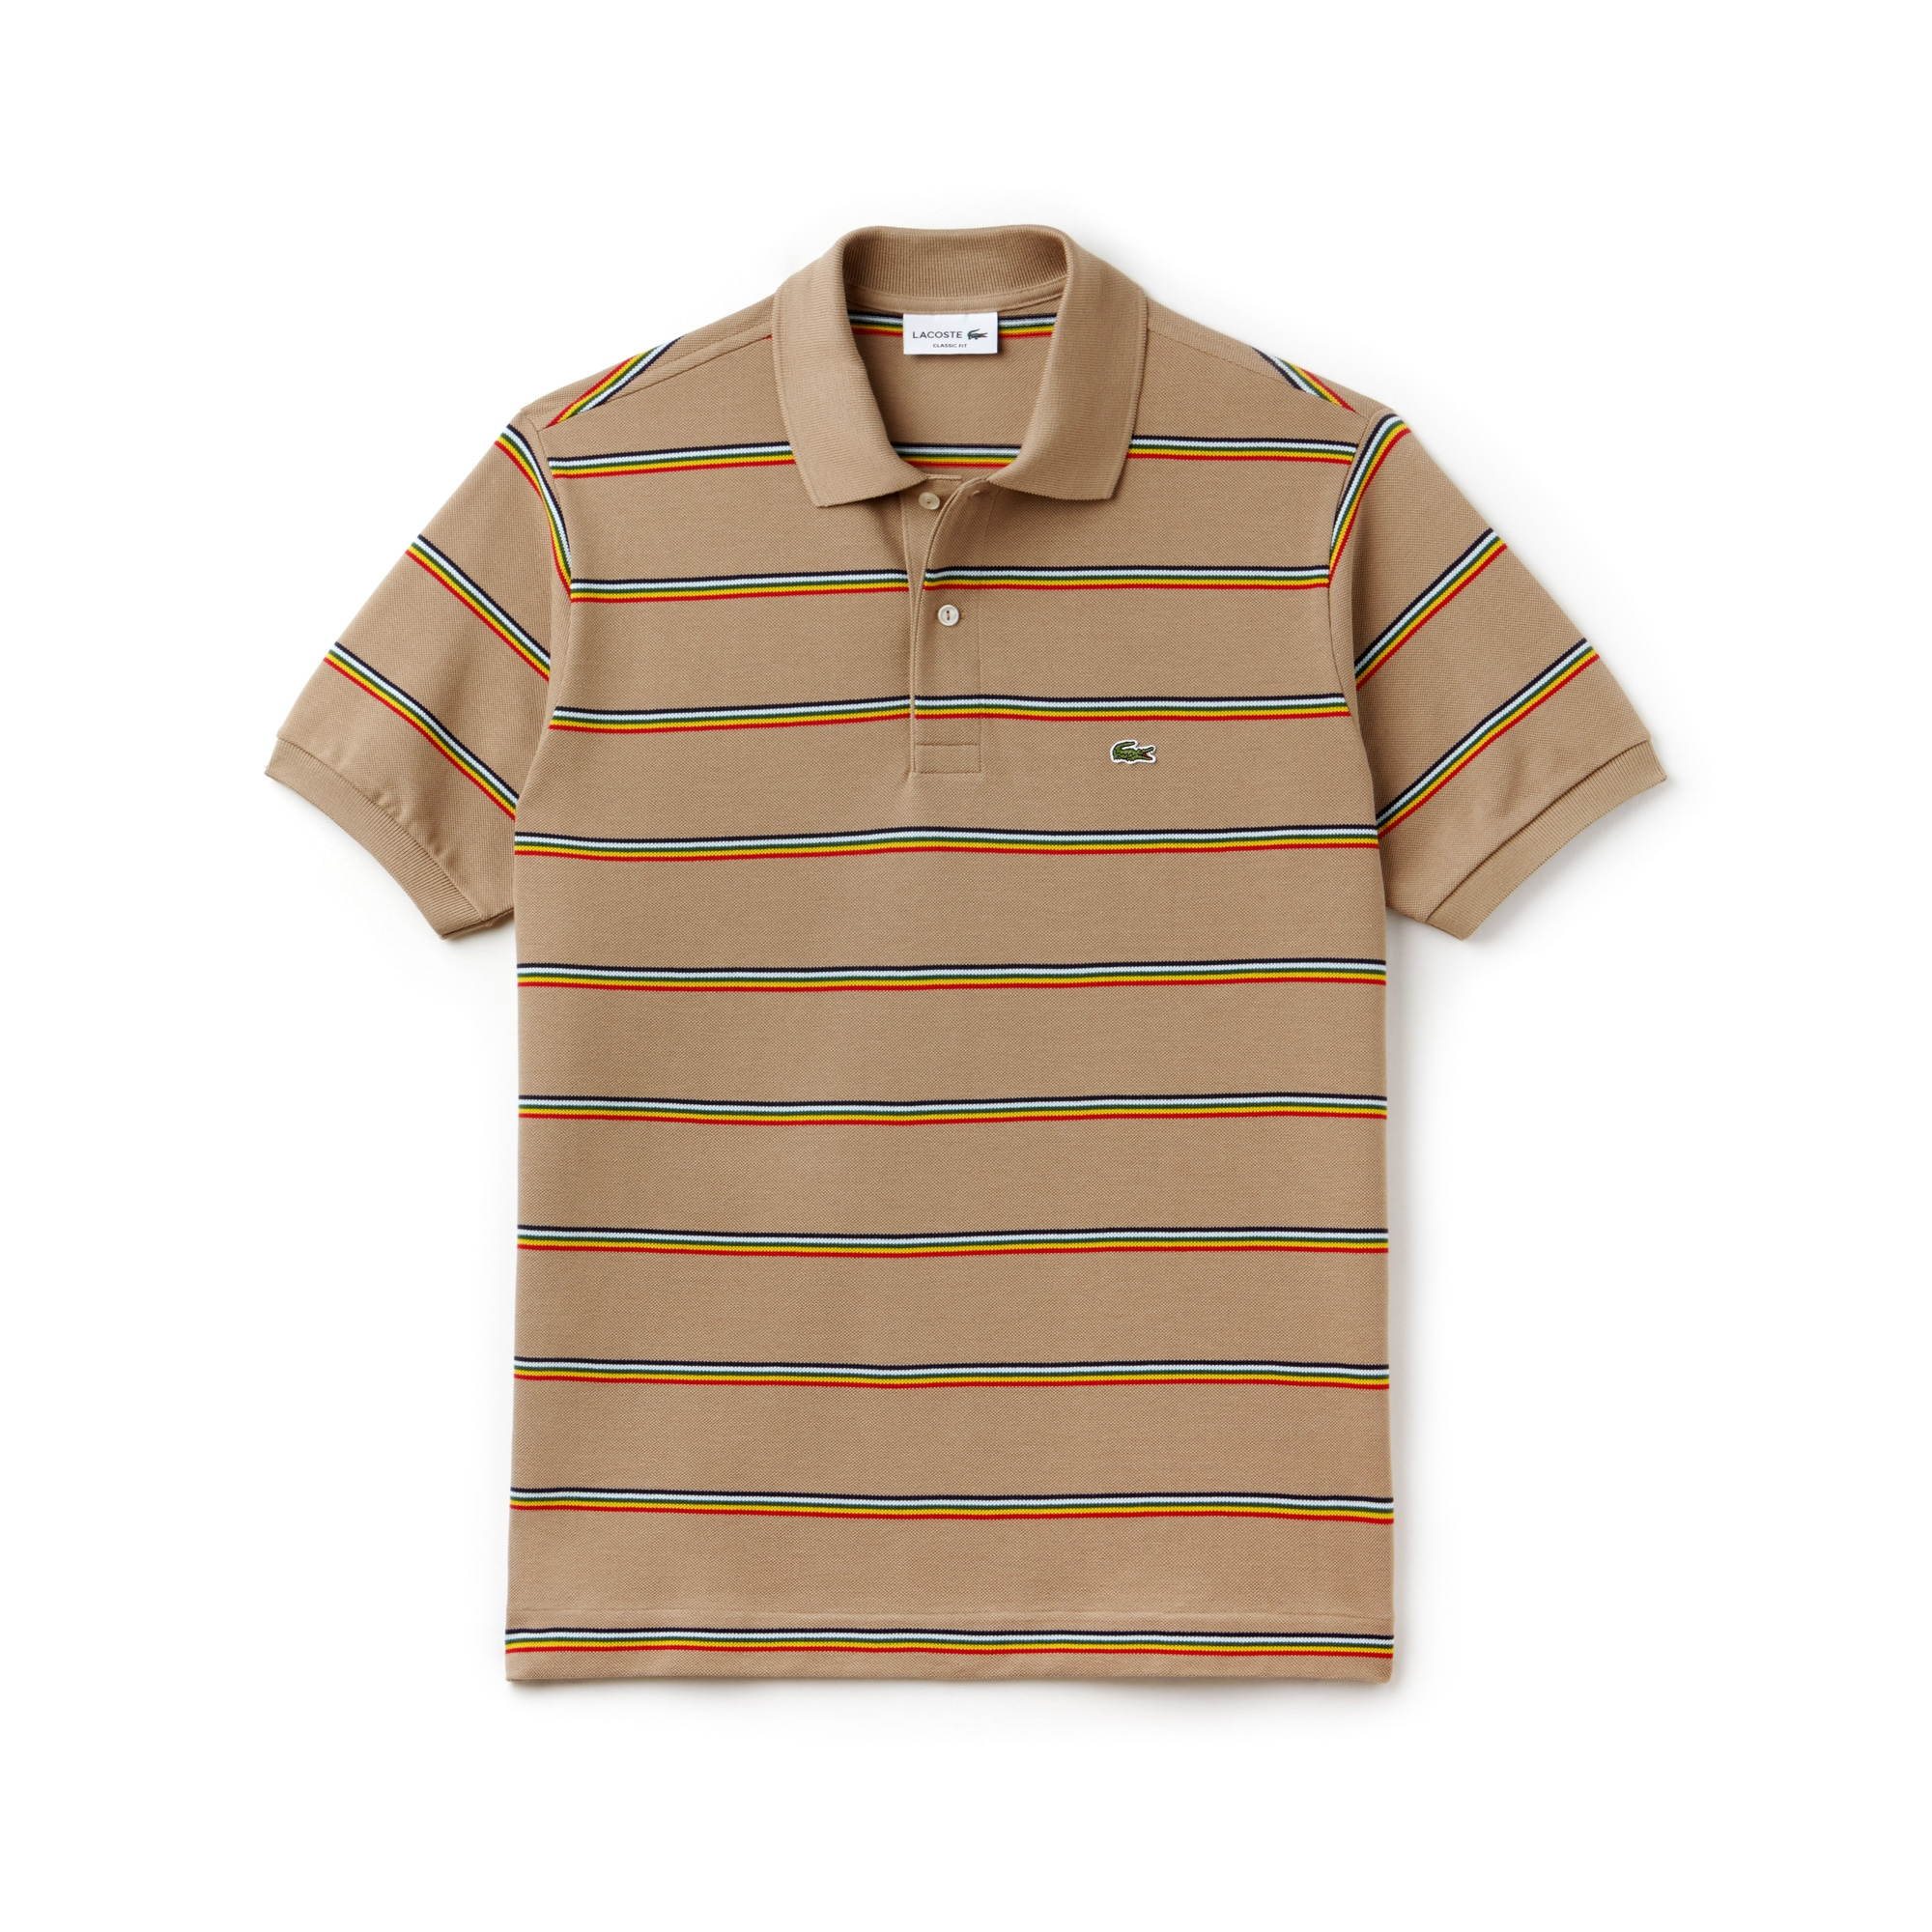 Men's L.12.12 Striped Cotton Piqué Polo